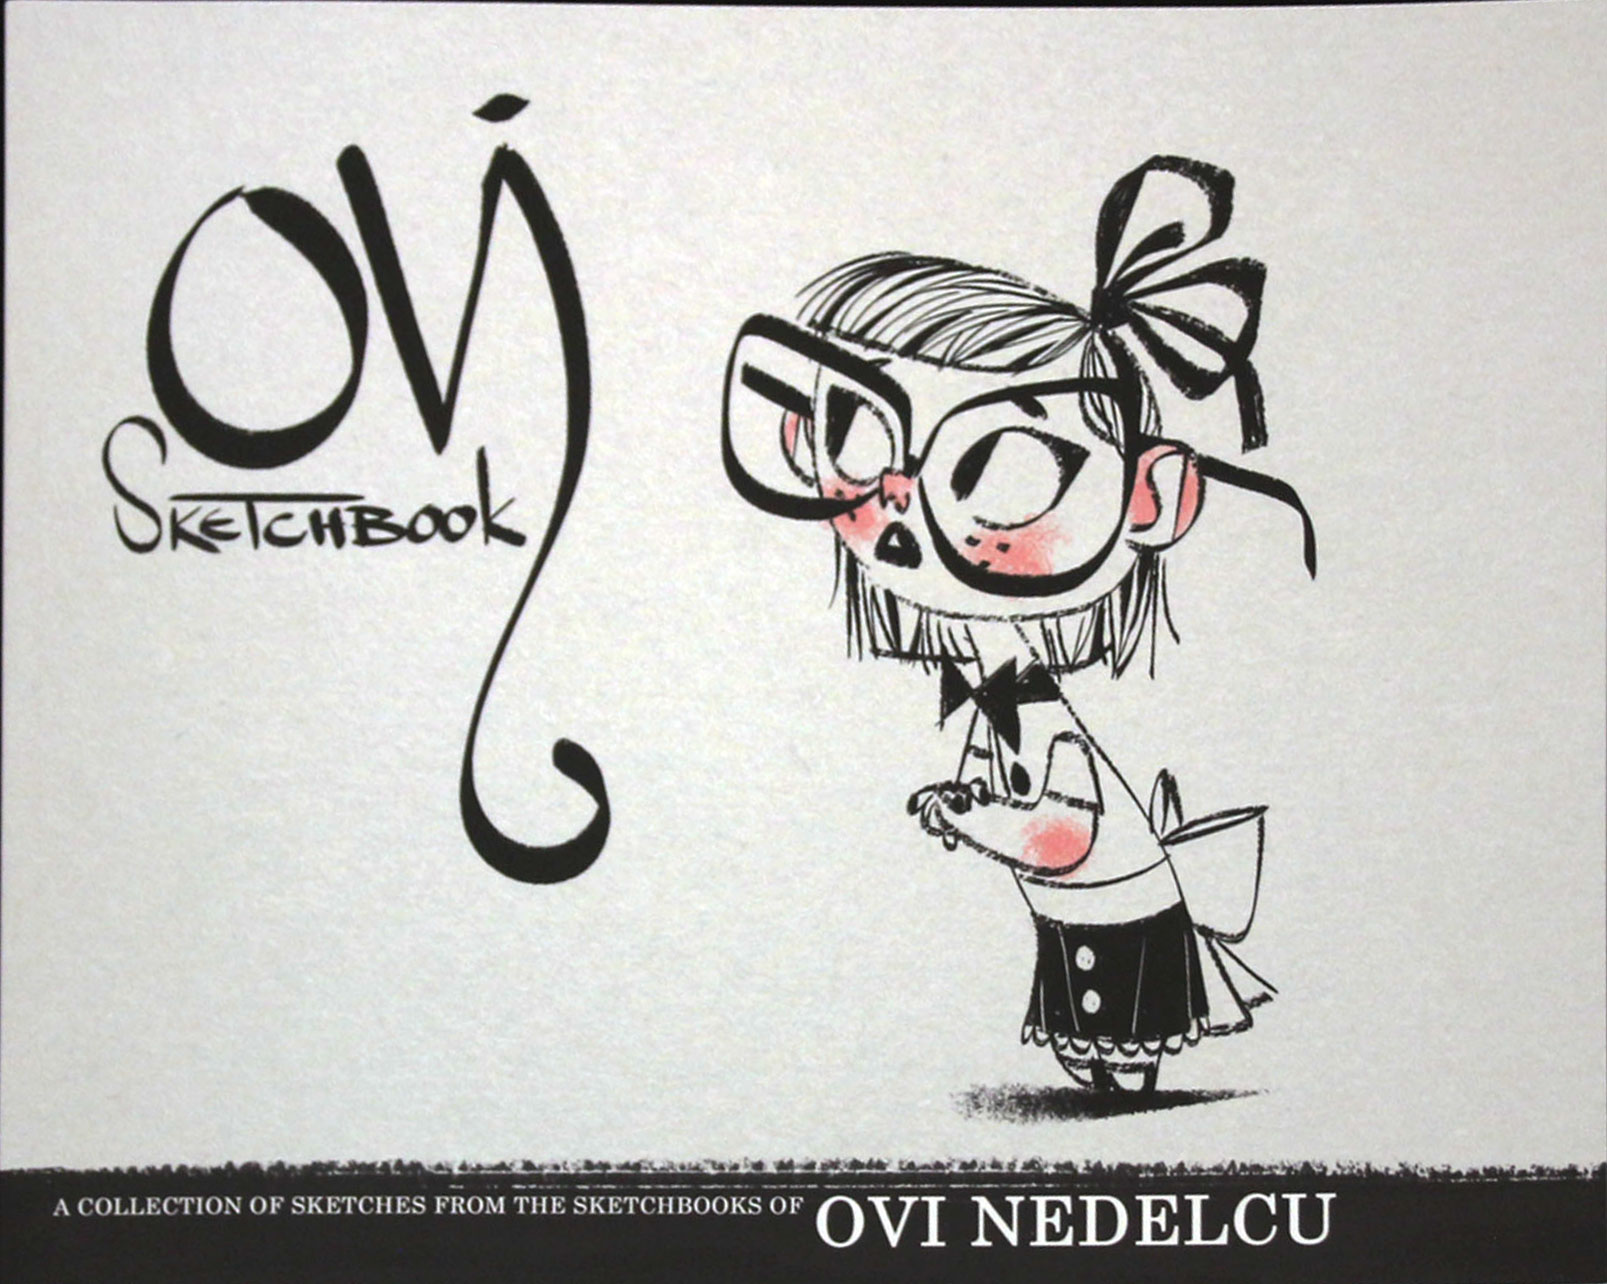 Ovi Sketchbook